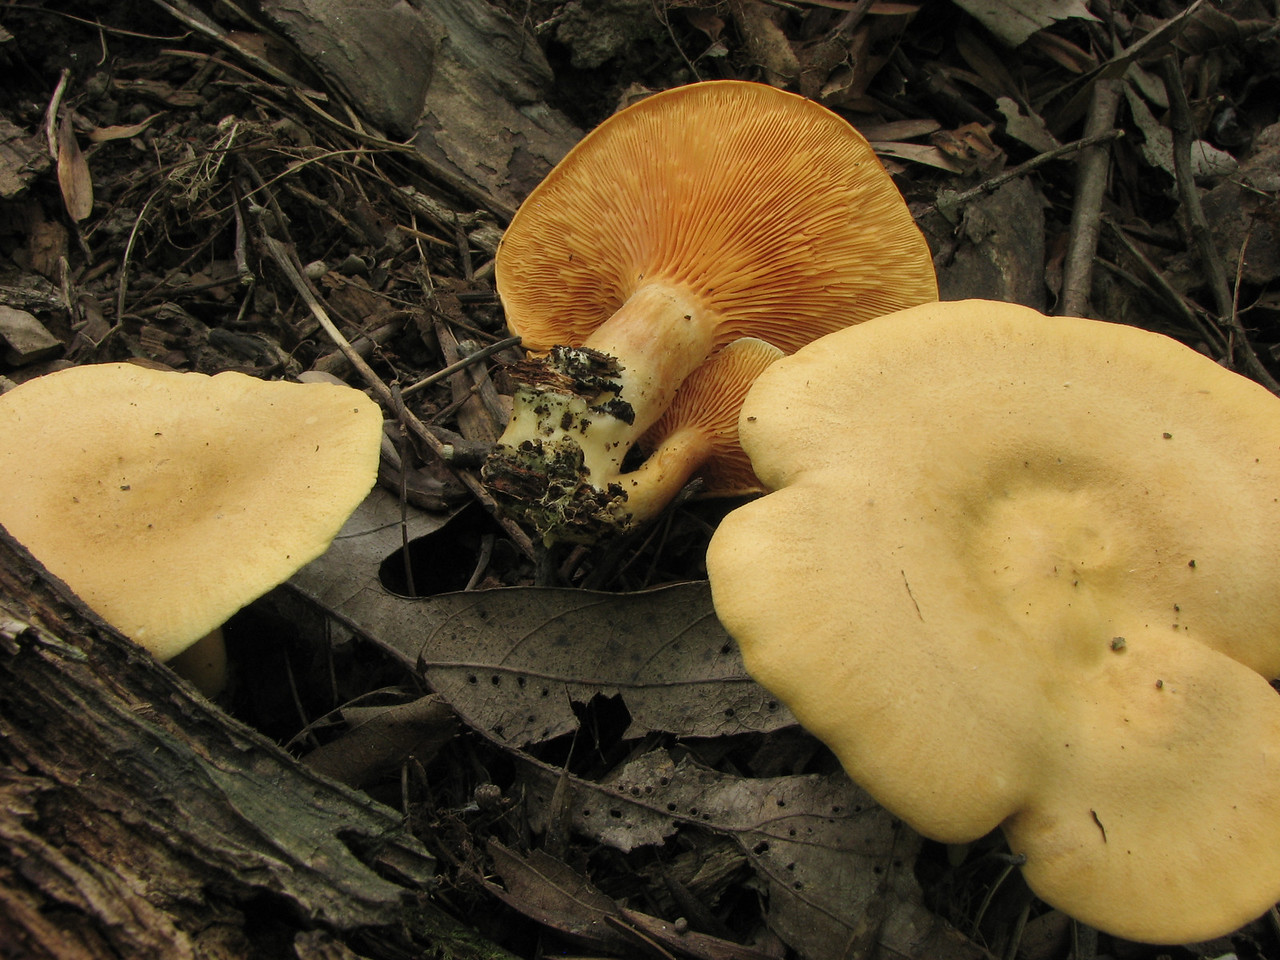 The same False Chanterelle as the last photo. If you zoom in on the gills, you can see that they split as they transition from the center to the edge.